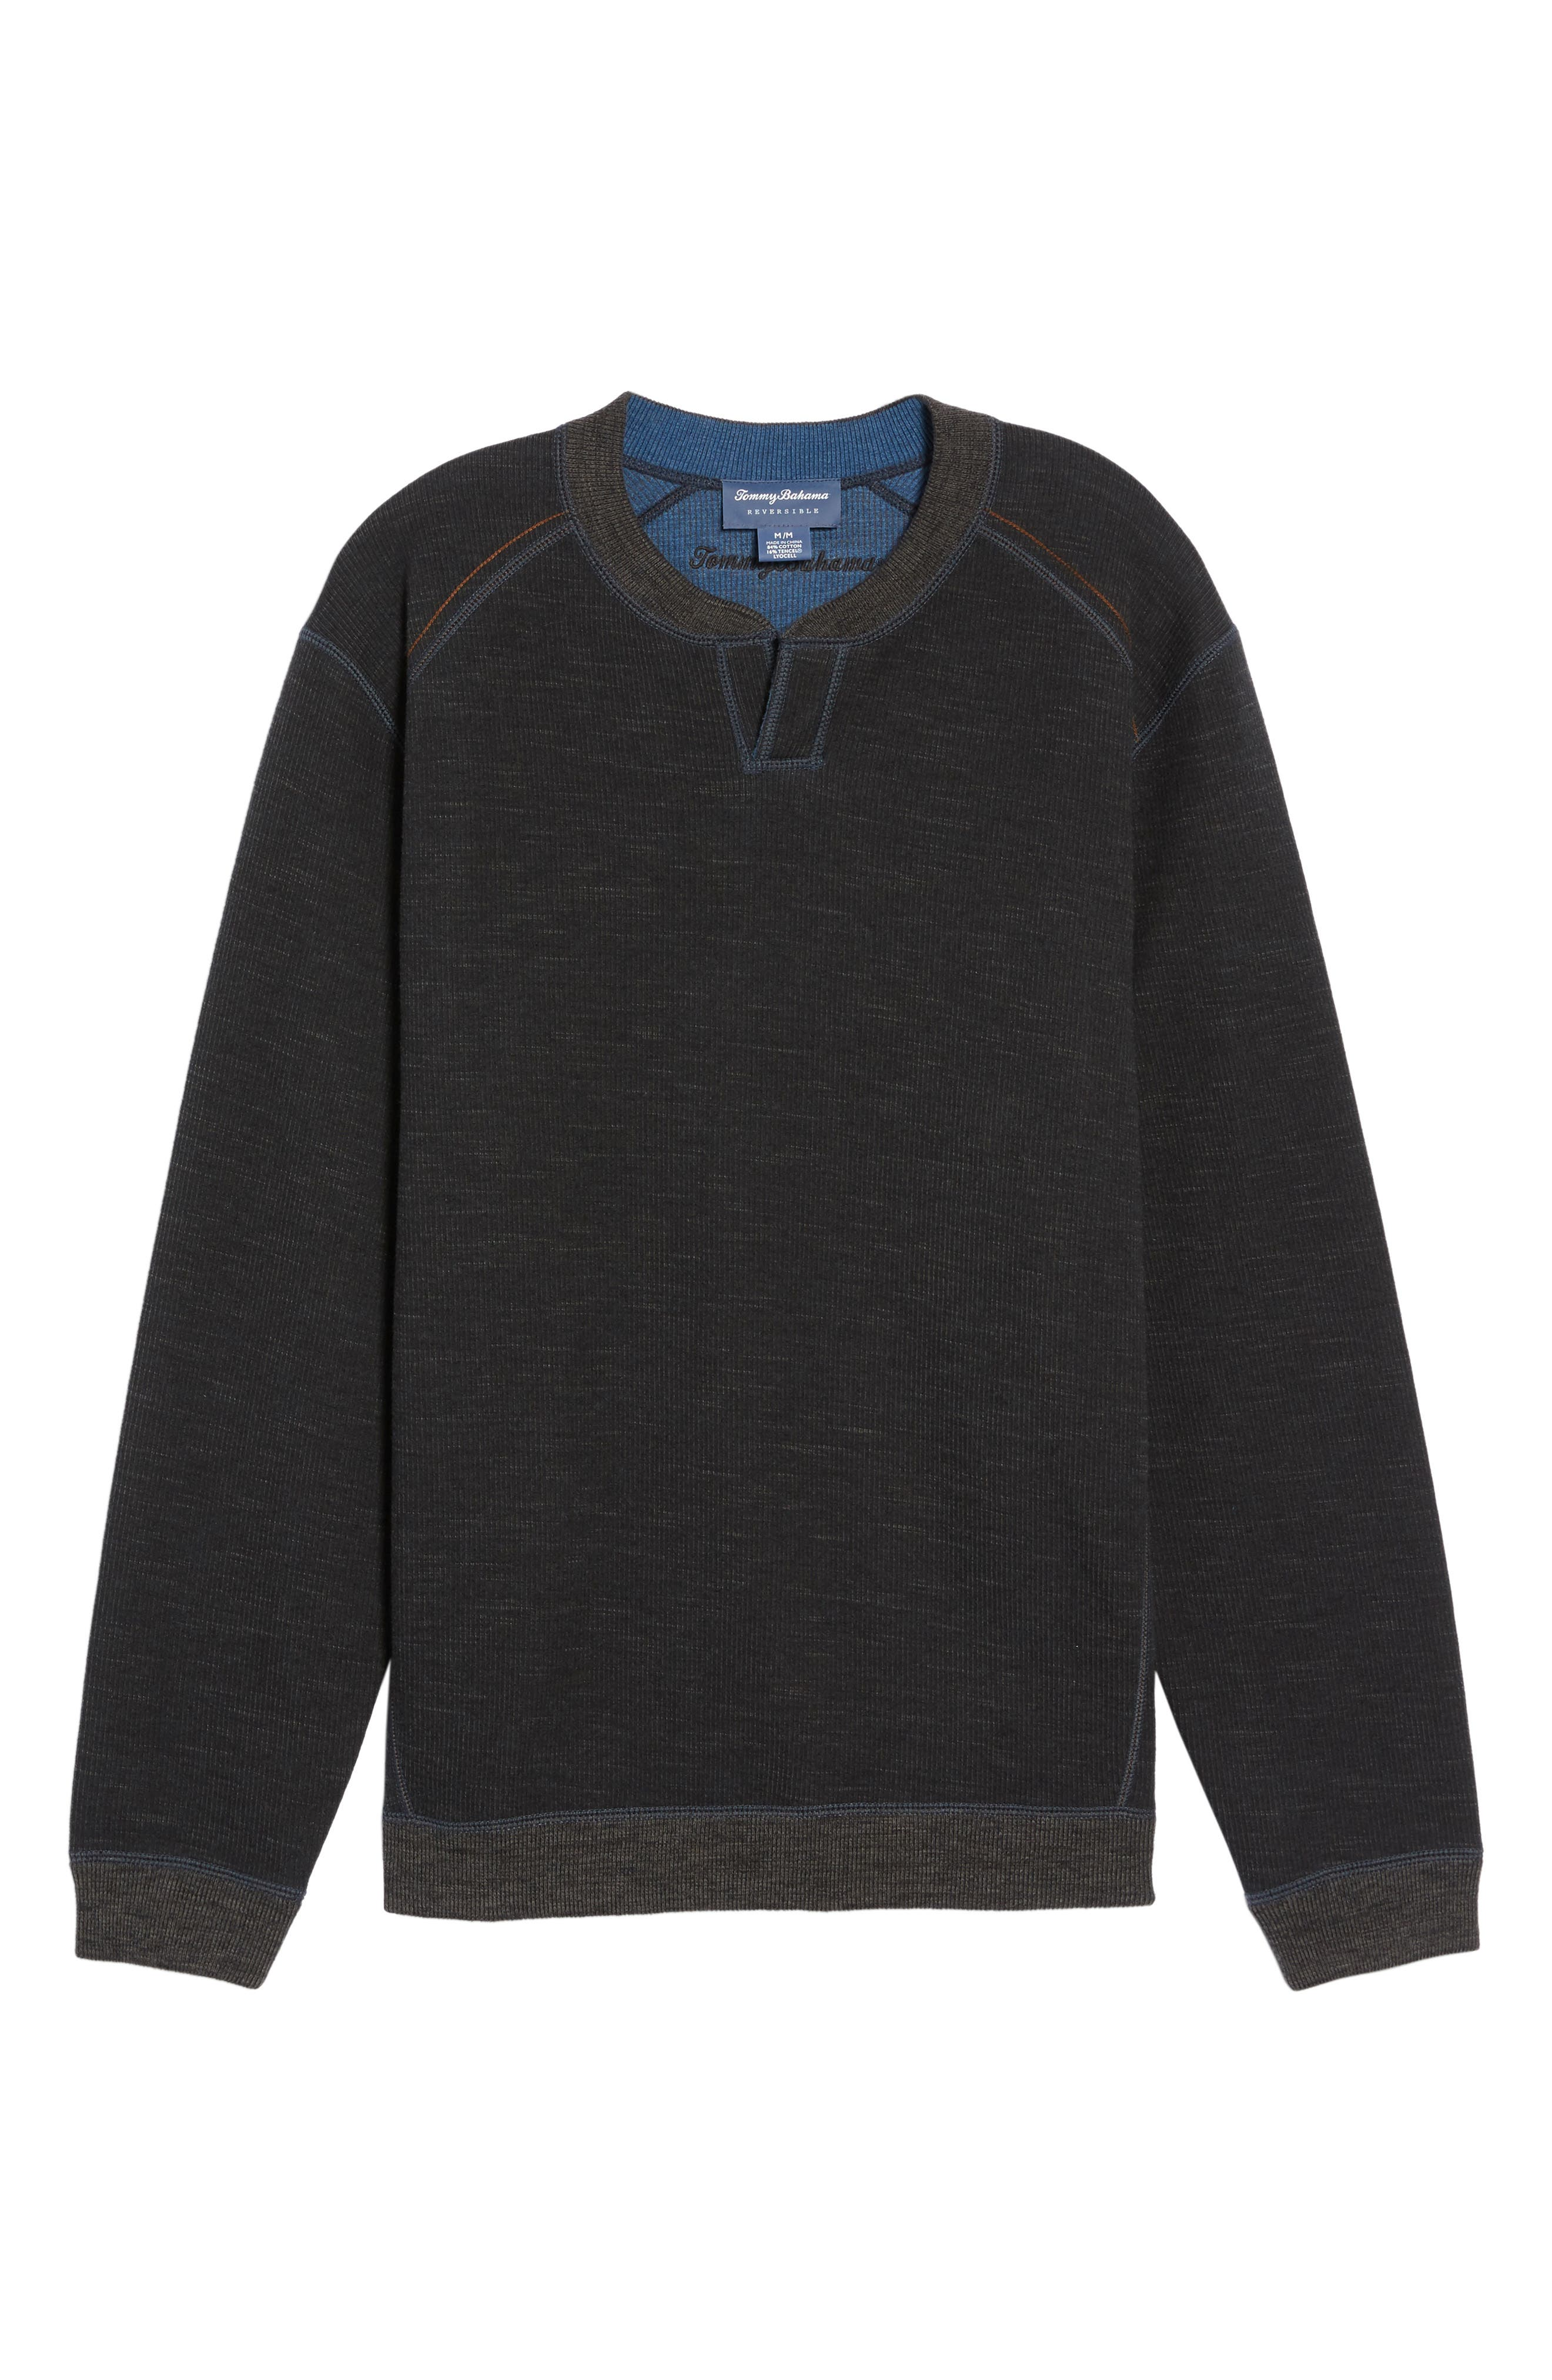 Flipsider Abaco Pullover,                             Alternate thumbnail 26, color,